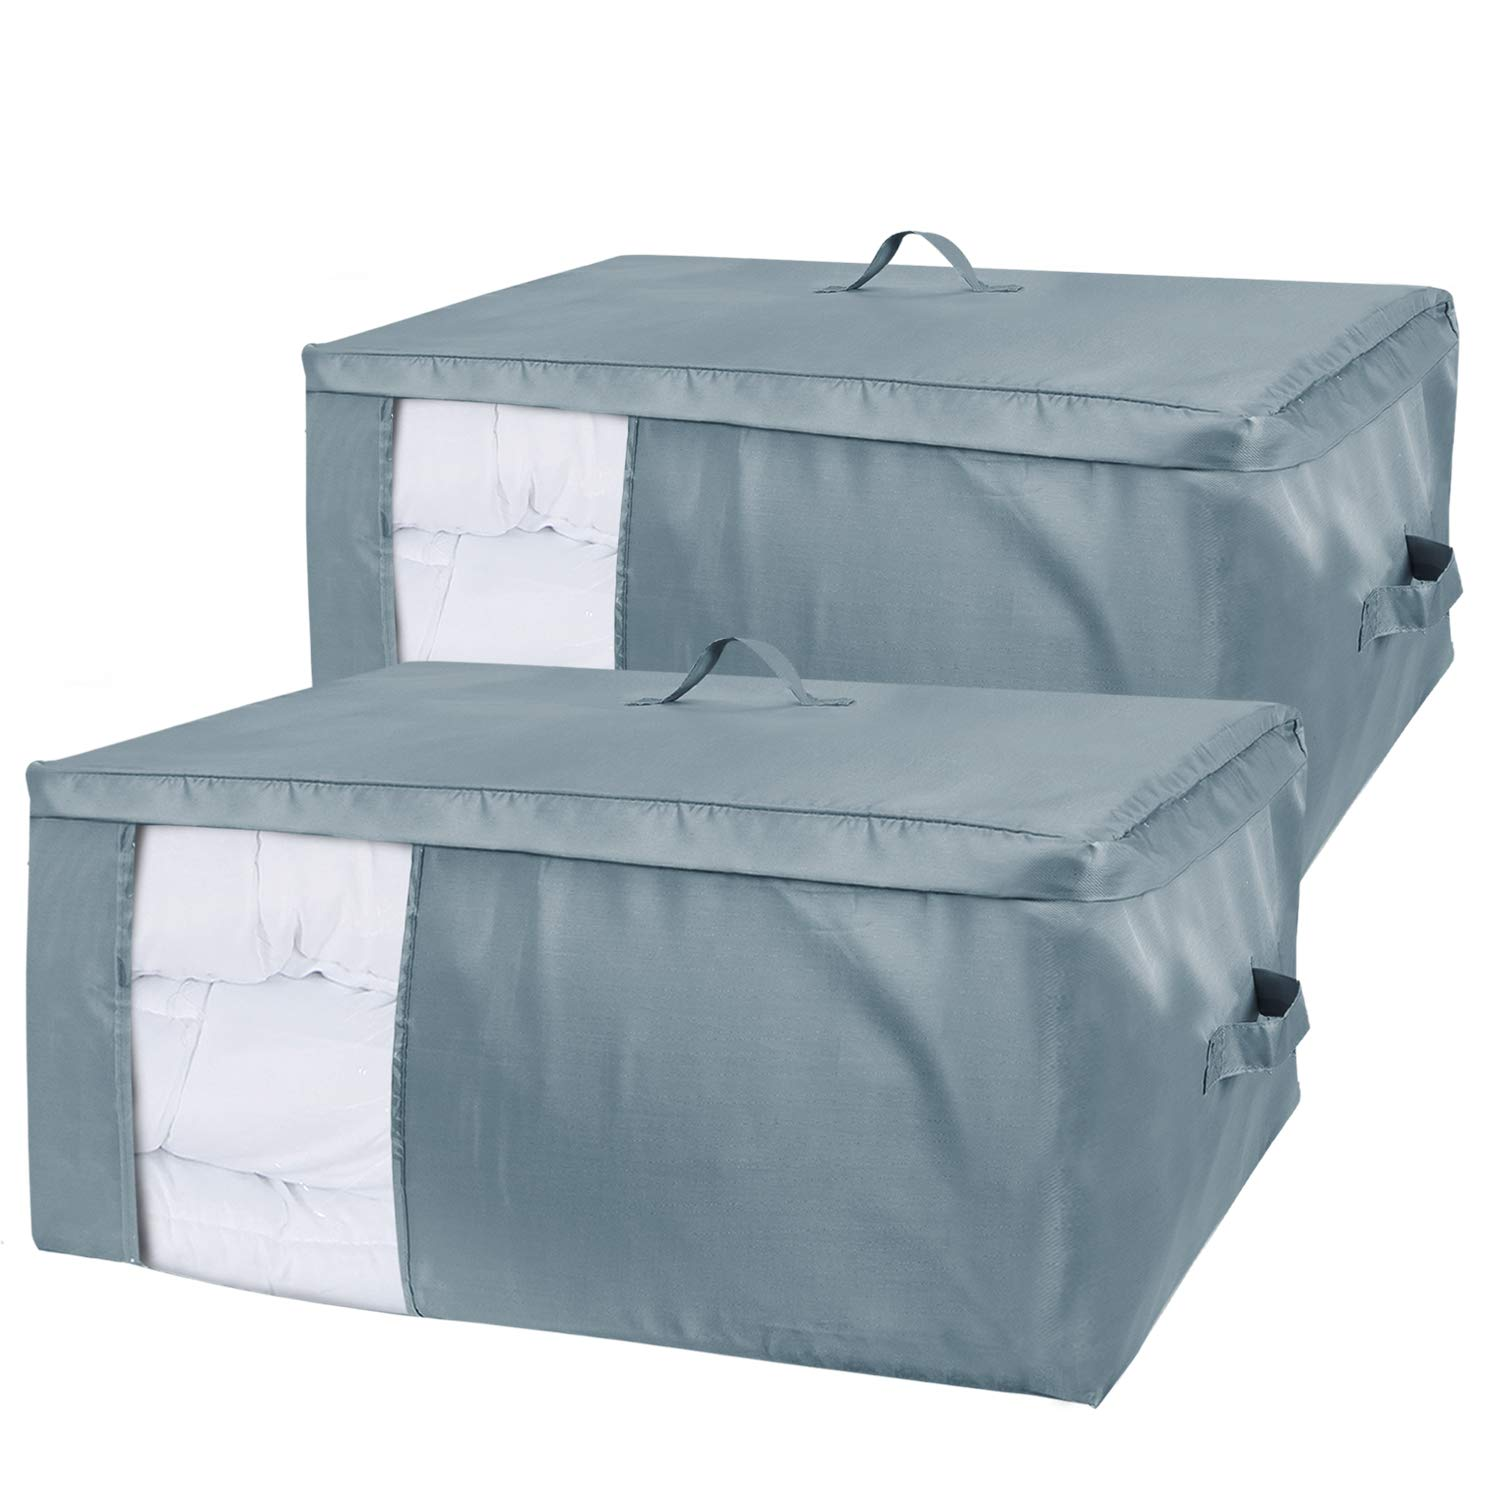 Lifewit Large Capacity Under Bed Storage Bag with Clear Windown Oxford Fabric Clothes Storage Bags for Comforters, Blankets, Bedding, Duvets, Clothes, Quilts, Pillows, Sweaters, Set of 2